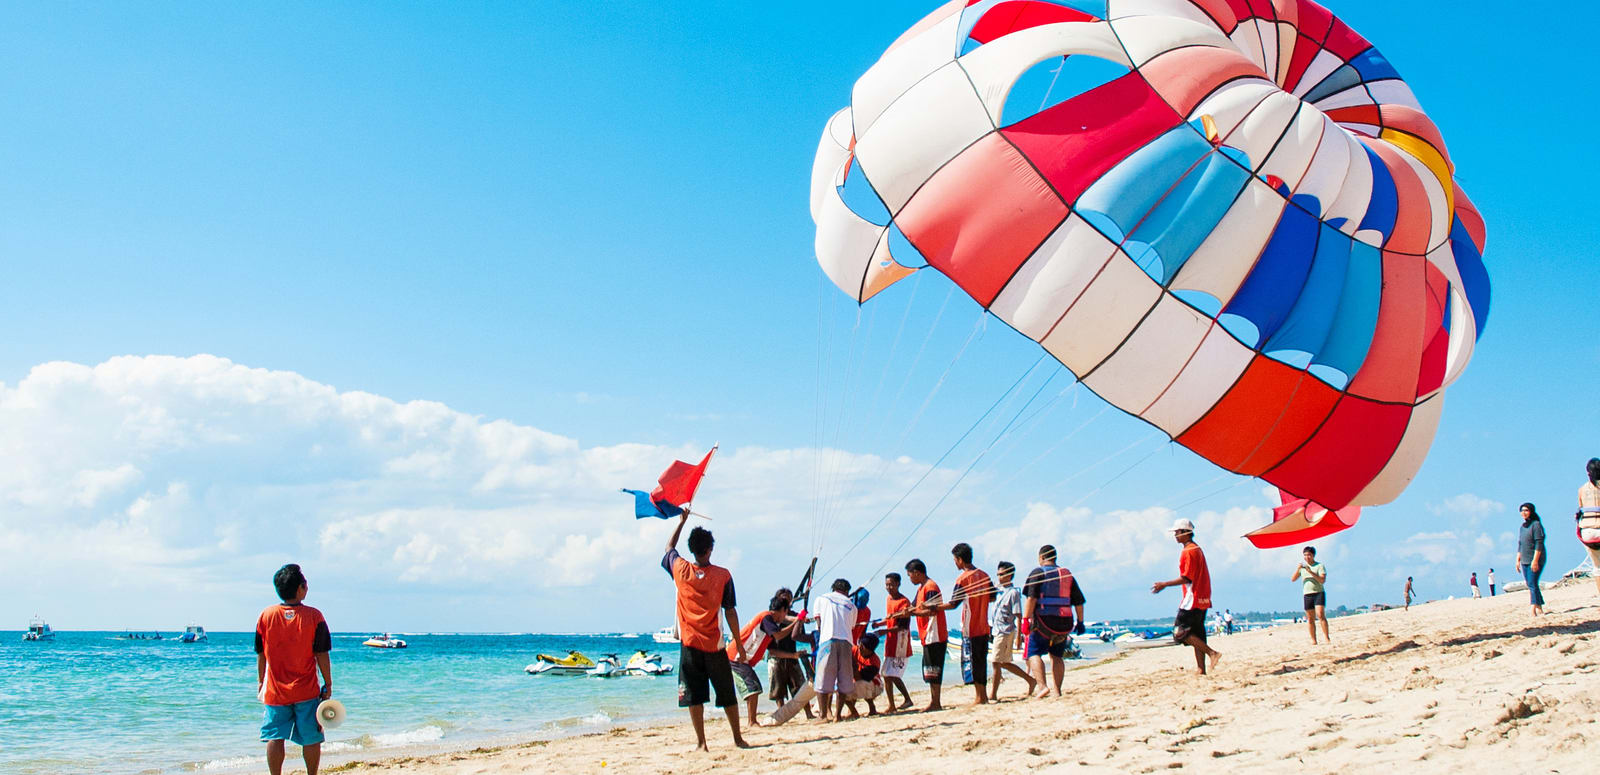 20 Best Adventure Activities In Goa 2019 With 2119 Reviews